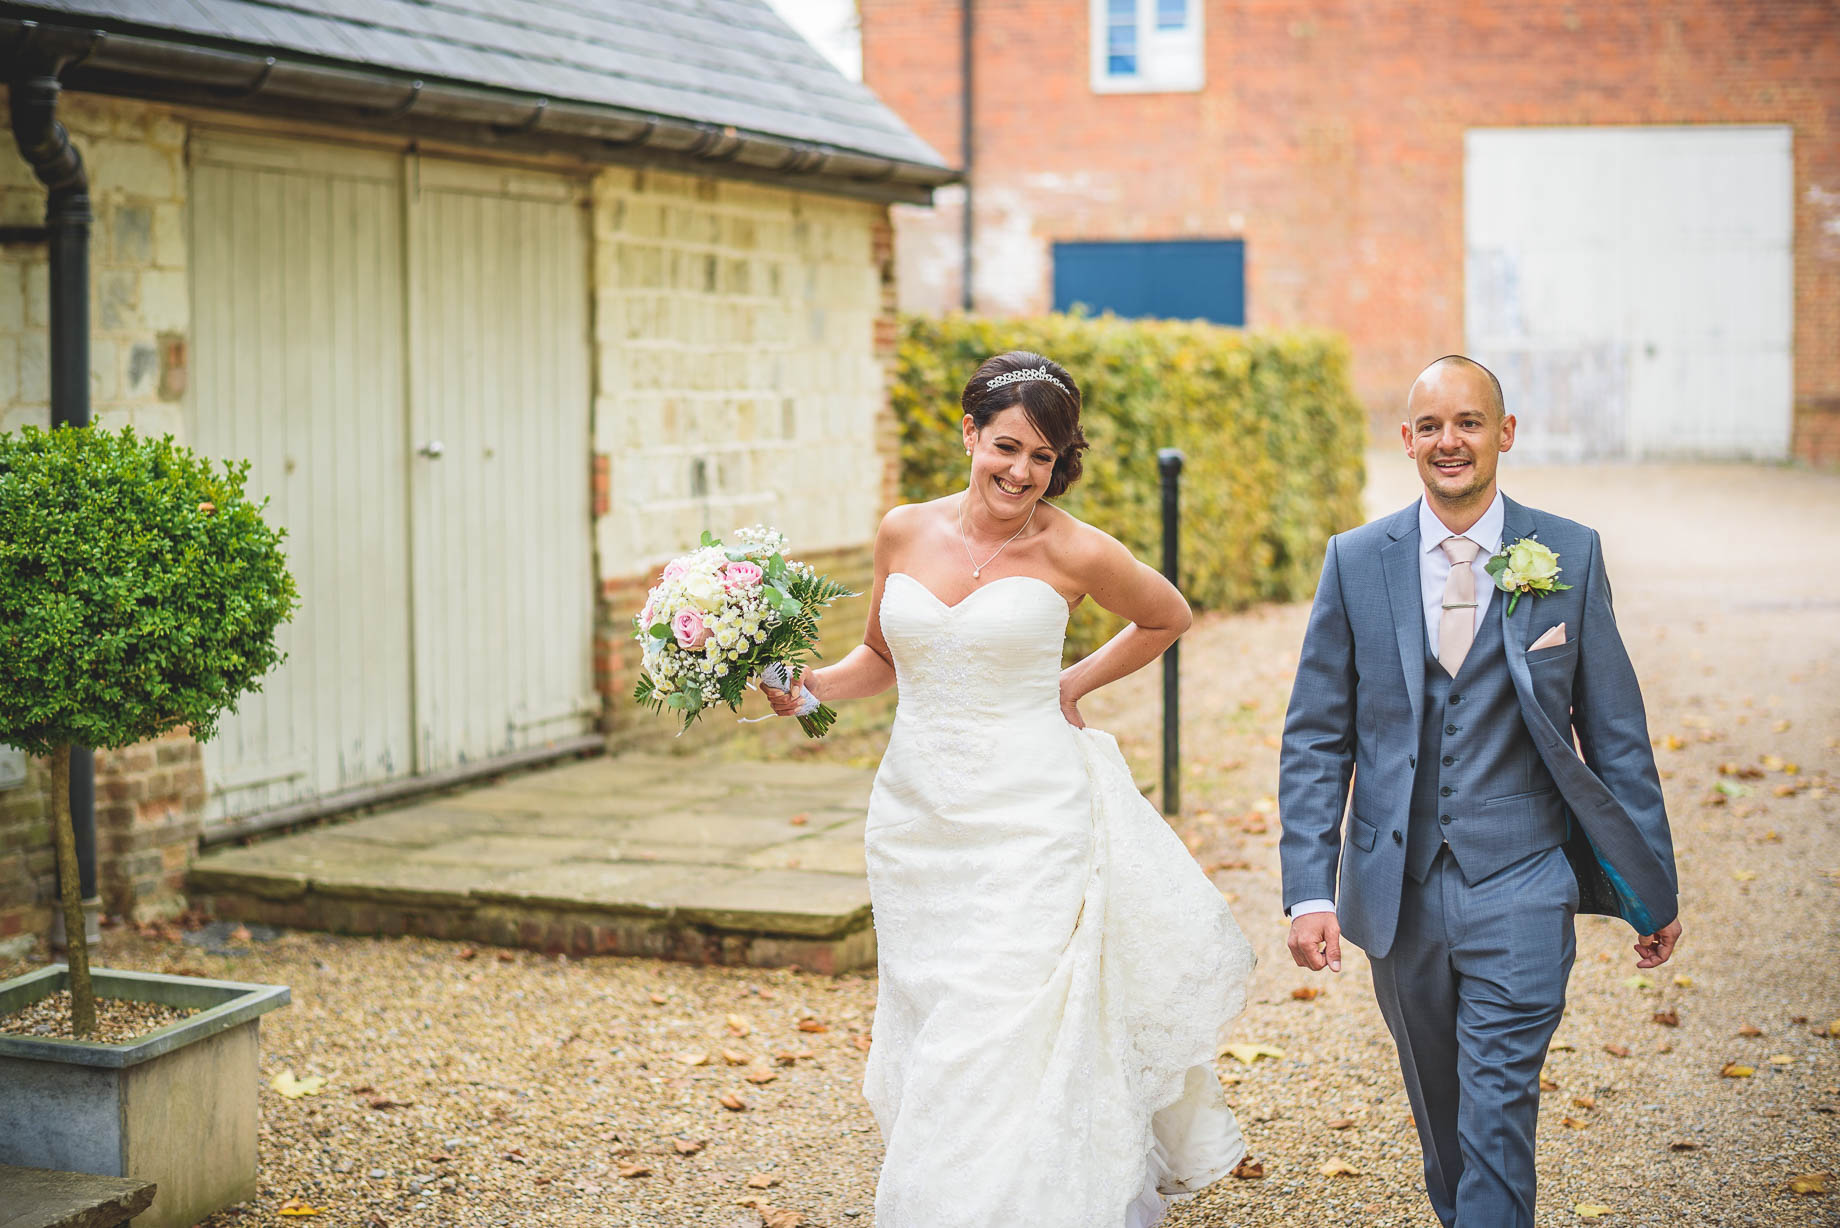 Bury Court Barn wedding photography - Guy Collier Photography - Karen and John (96 of 166)